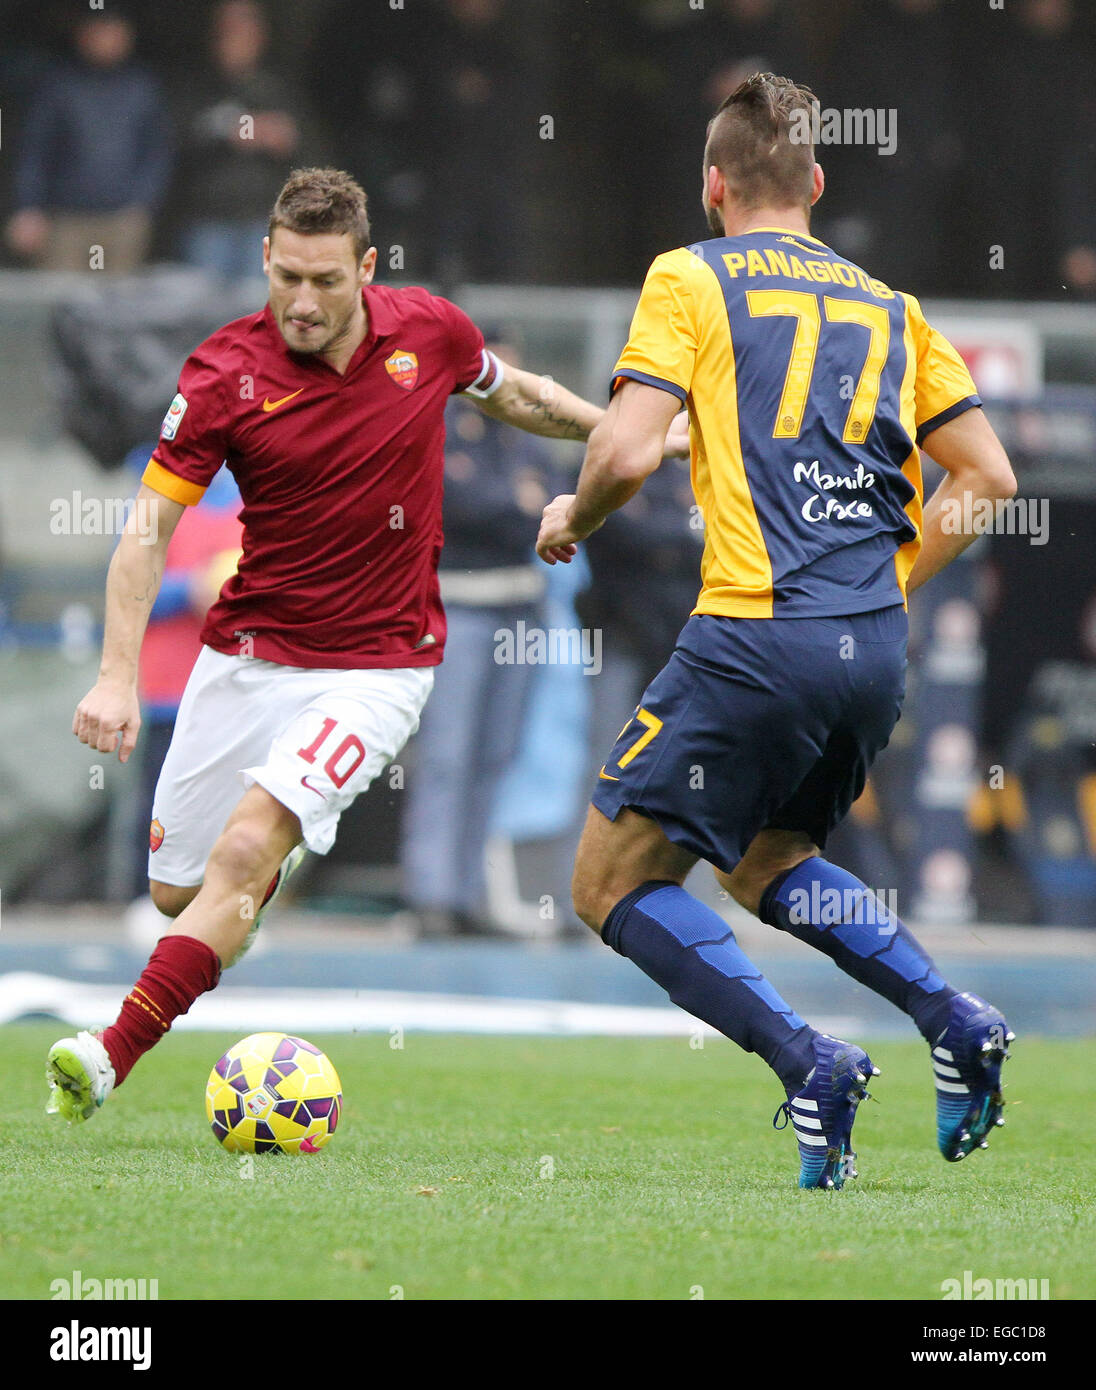 Verona, Italy. 22nd February, 2015. Roma's forward Francesco Totti  (L) during the Italian Serie A football - Stock Image